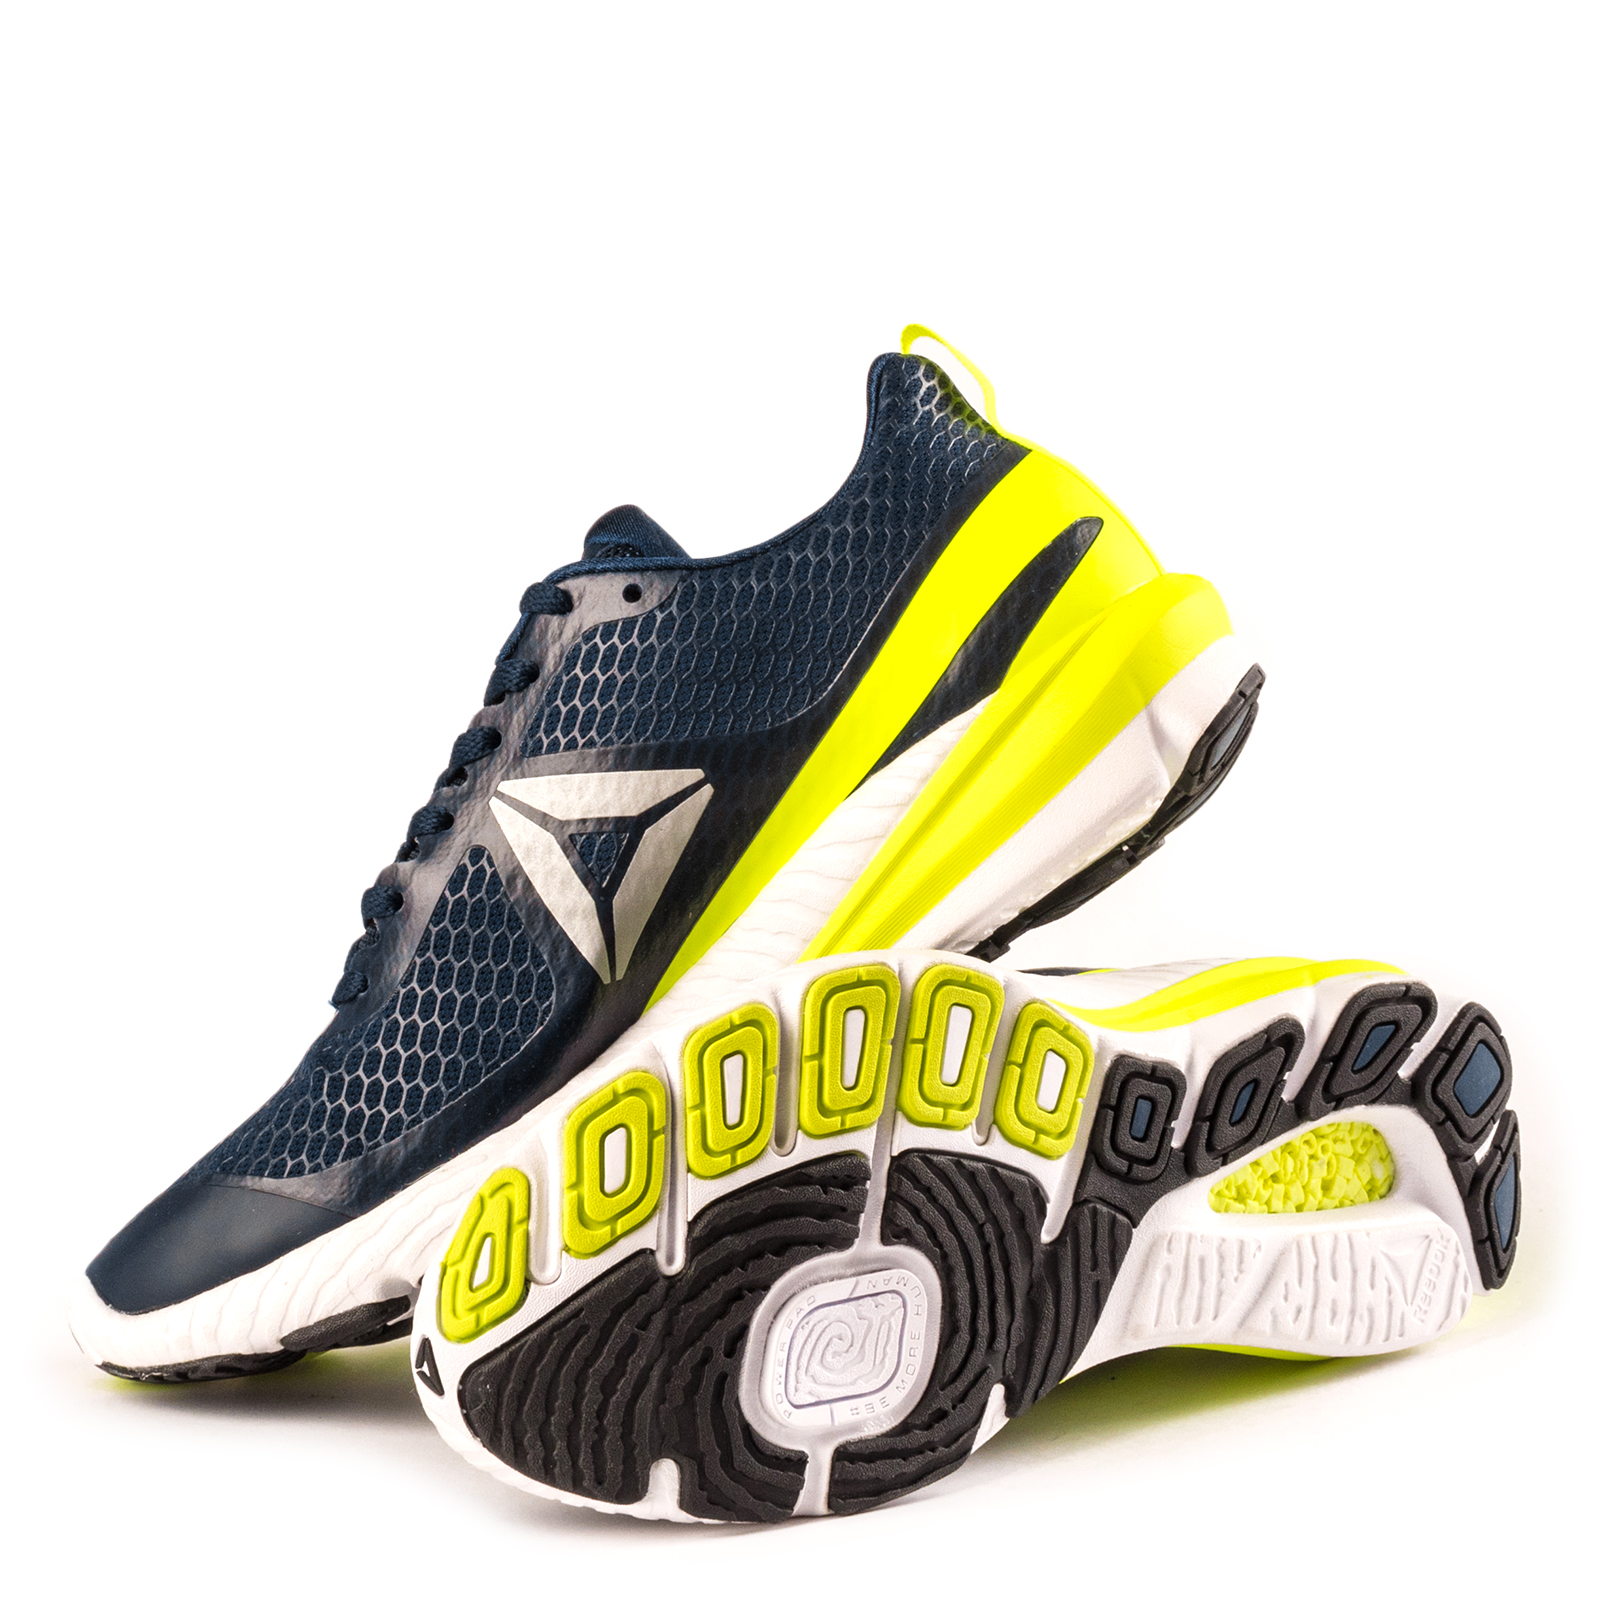 Available from 10.11 REEBOK running shoes BD4630